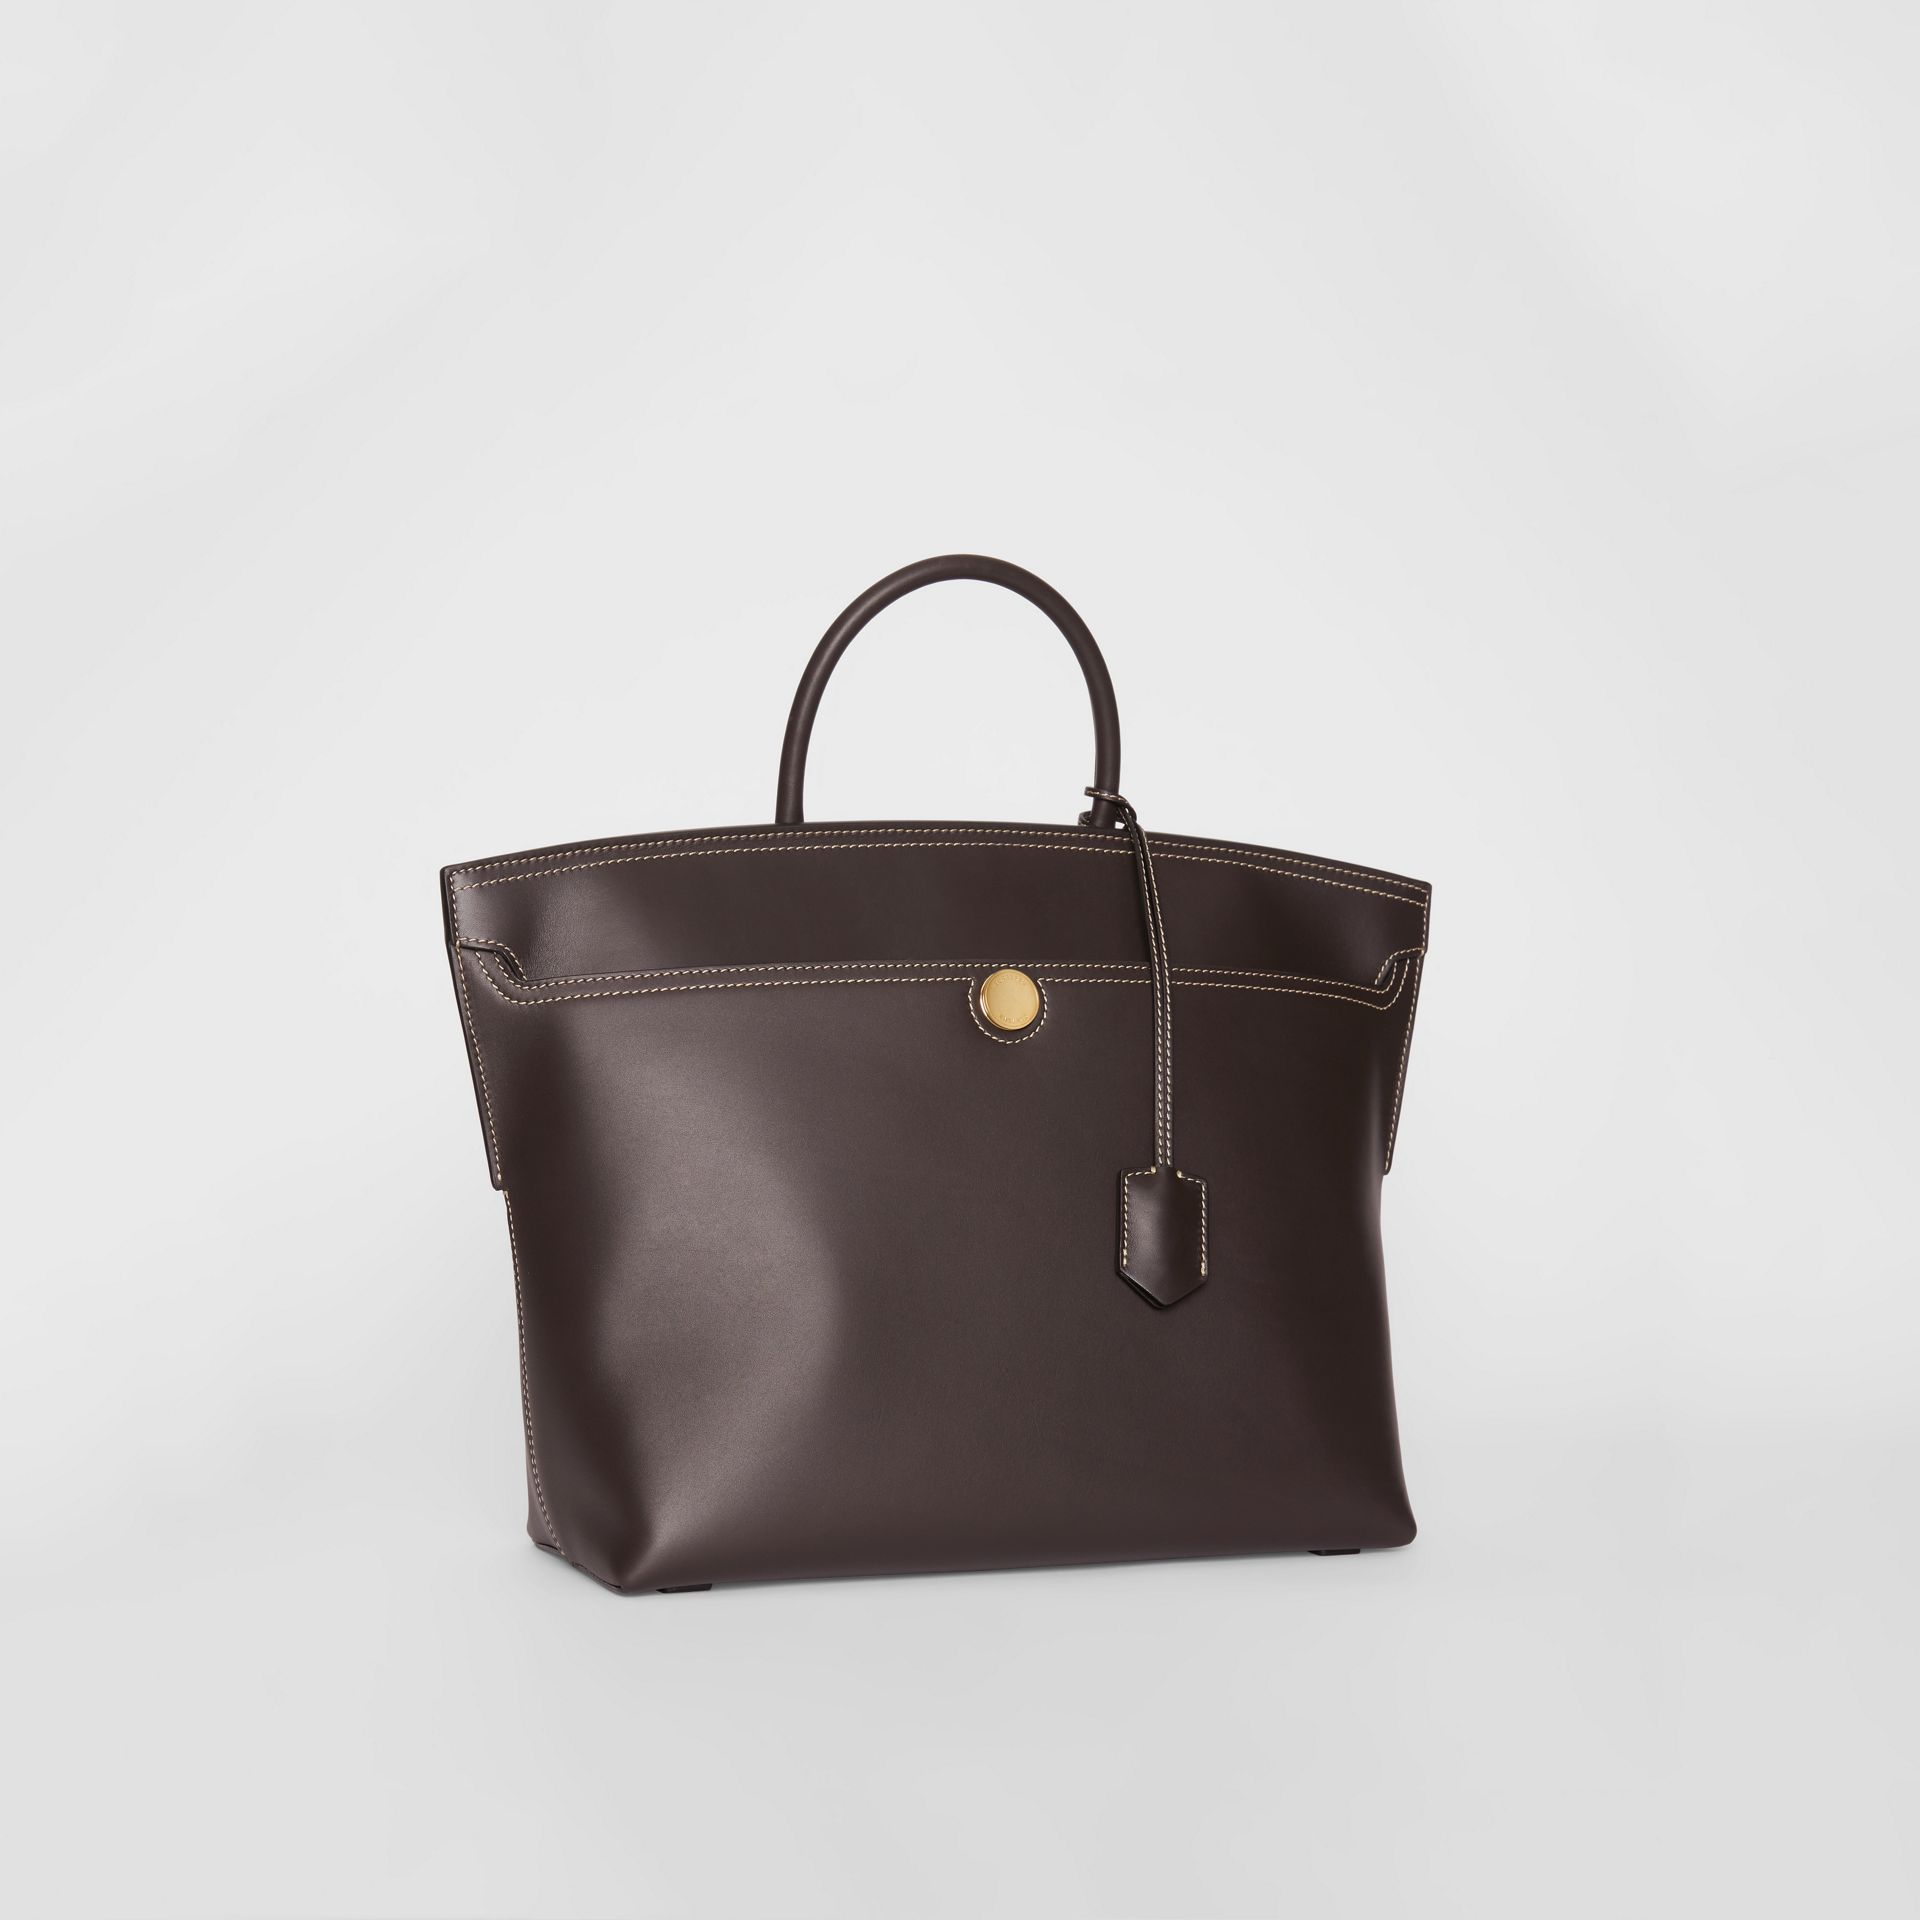 Leather Society Top Handle Bag in Coffee - Women | Burberry United States - gallery image 6